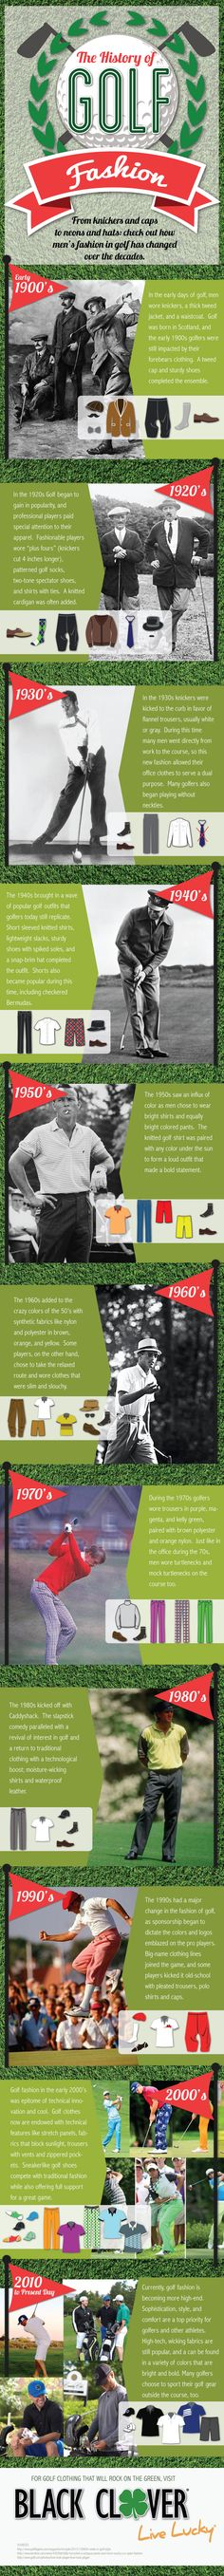 history of golf fashions